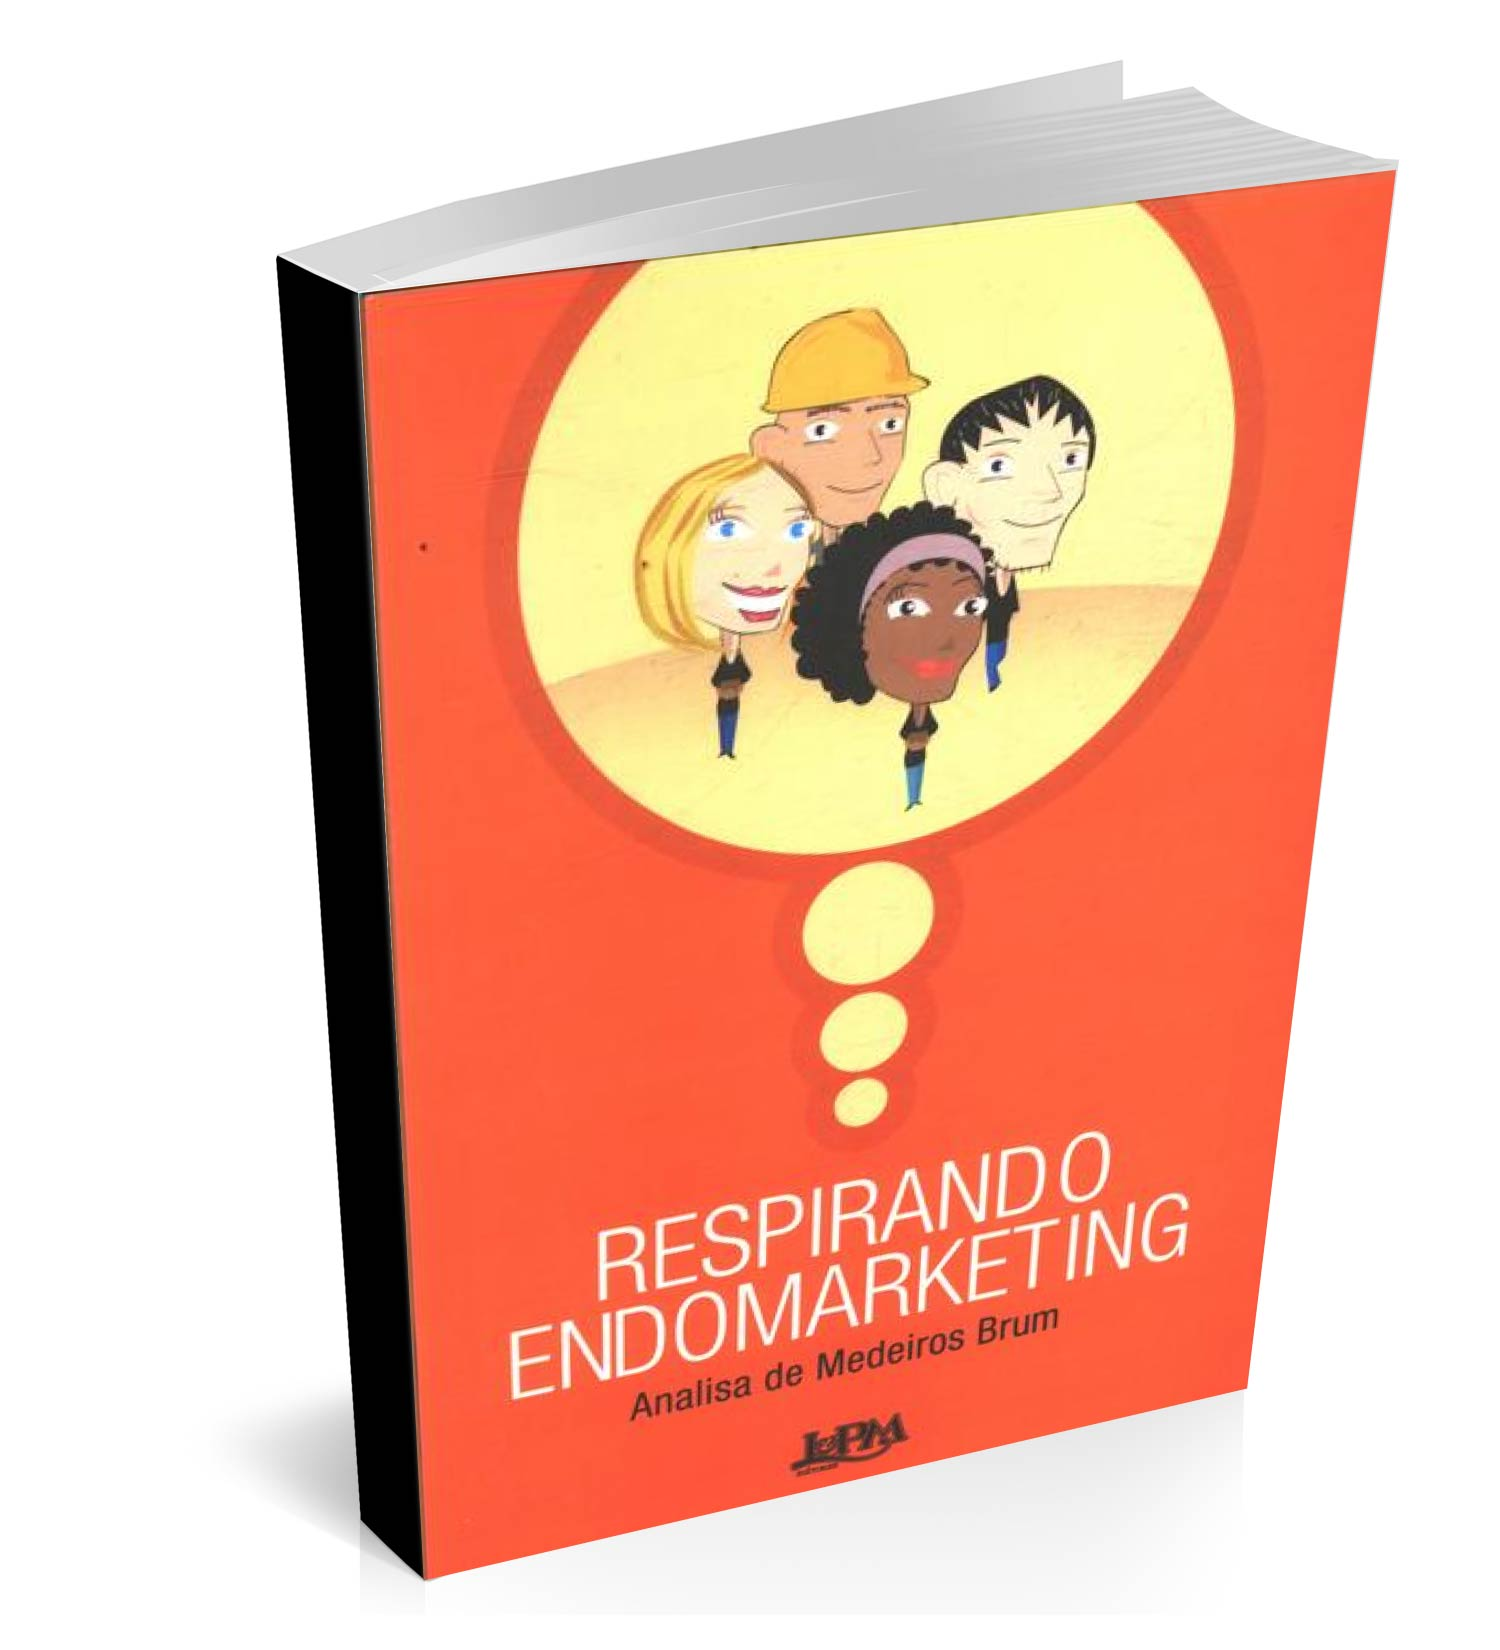 livro de endomarketing